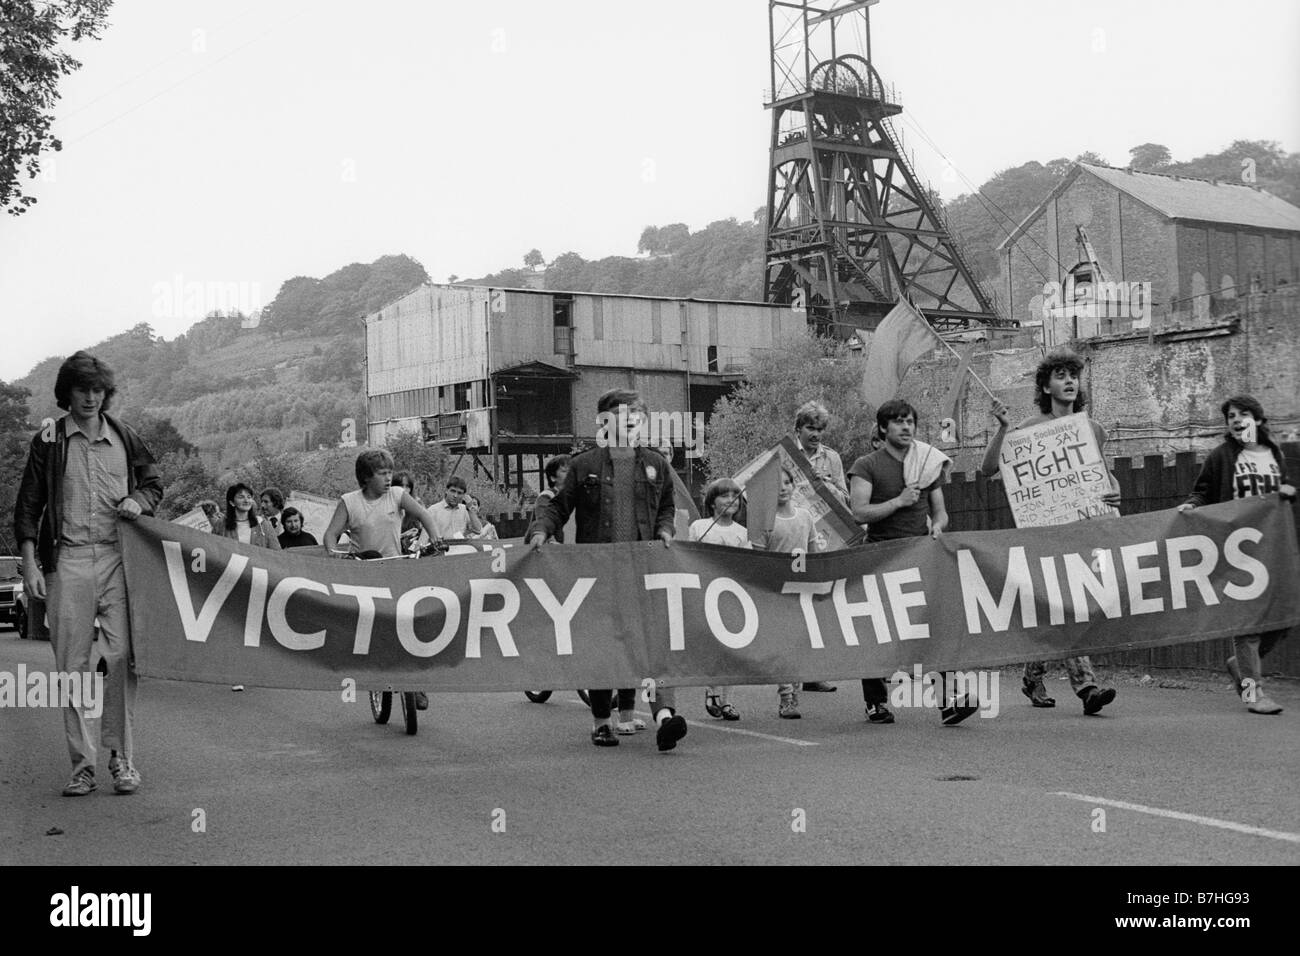 10th August 1984 Militant Labour Party Young Socialists march with banners to support miners during the 84/85 strike Stock Photo